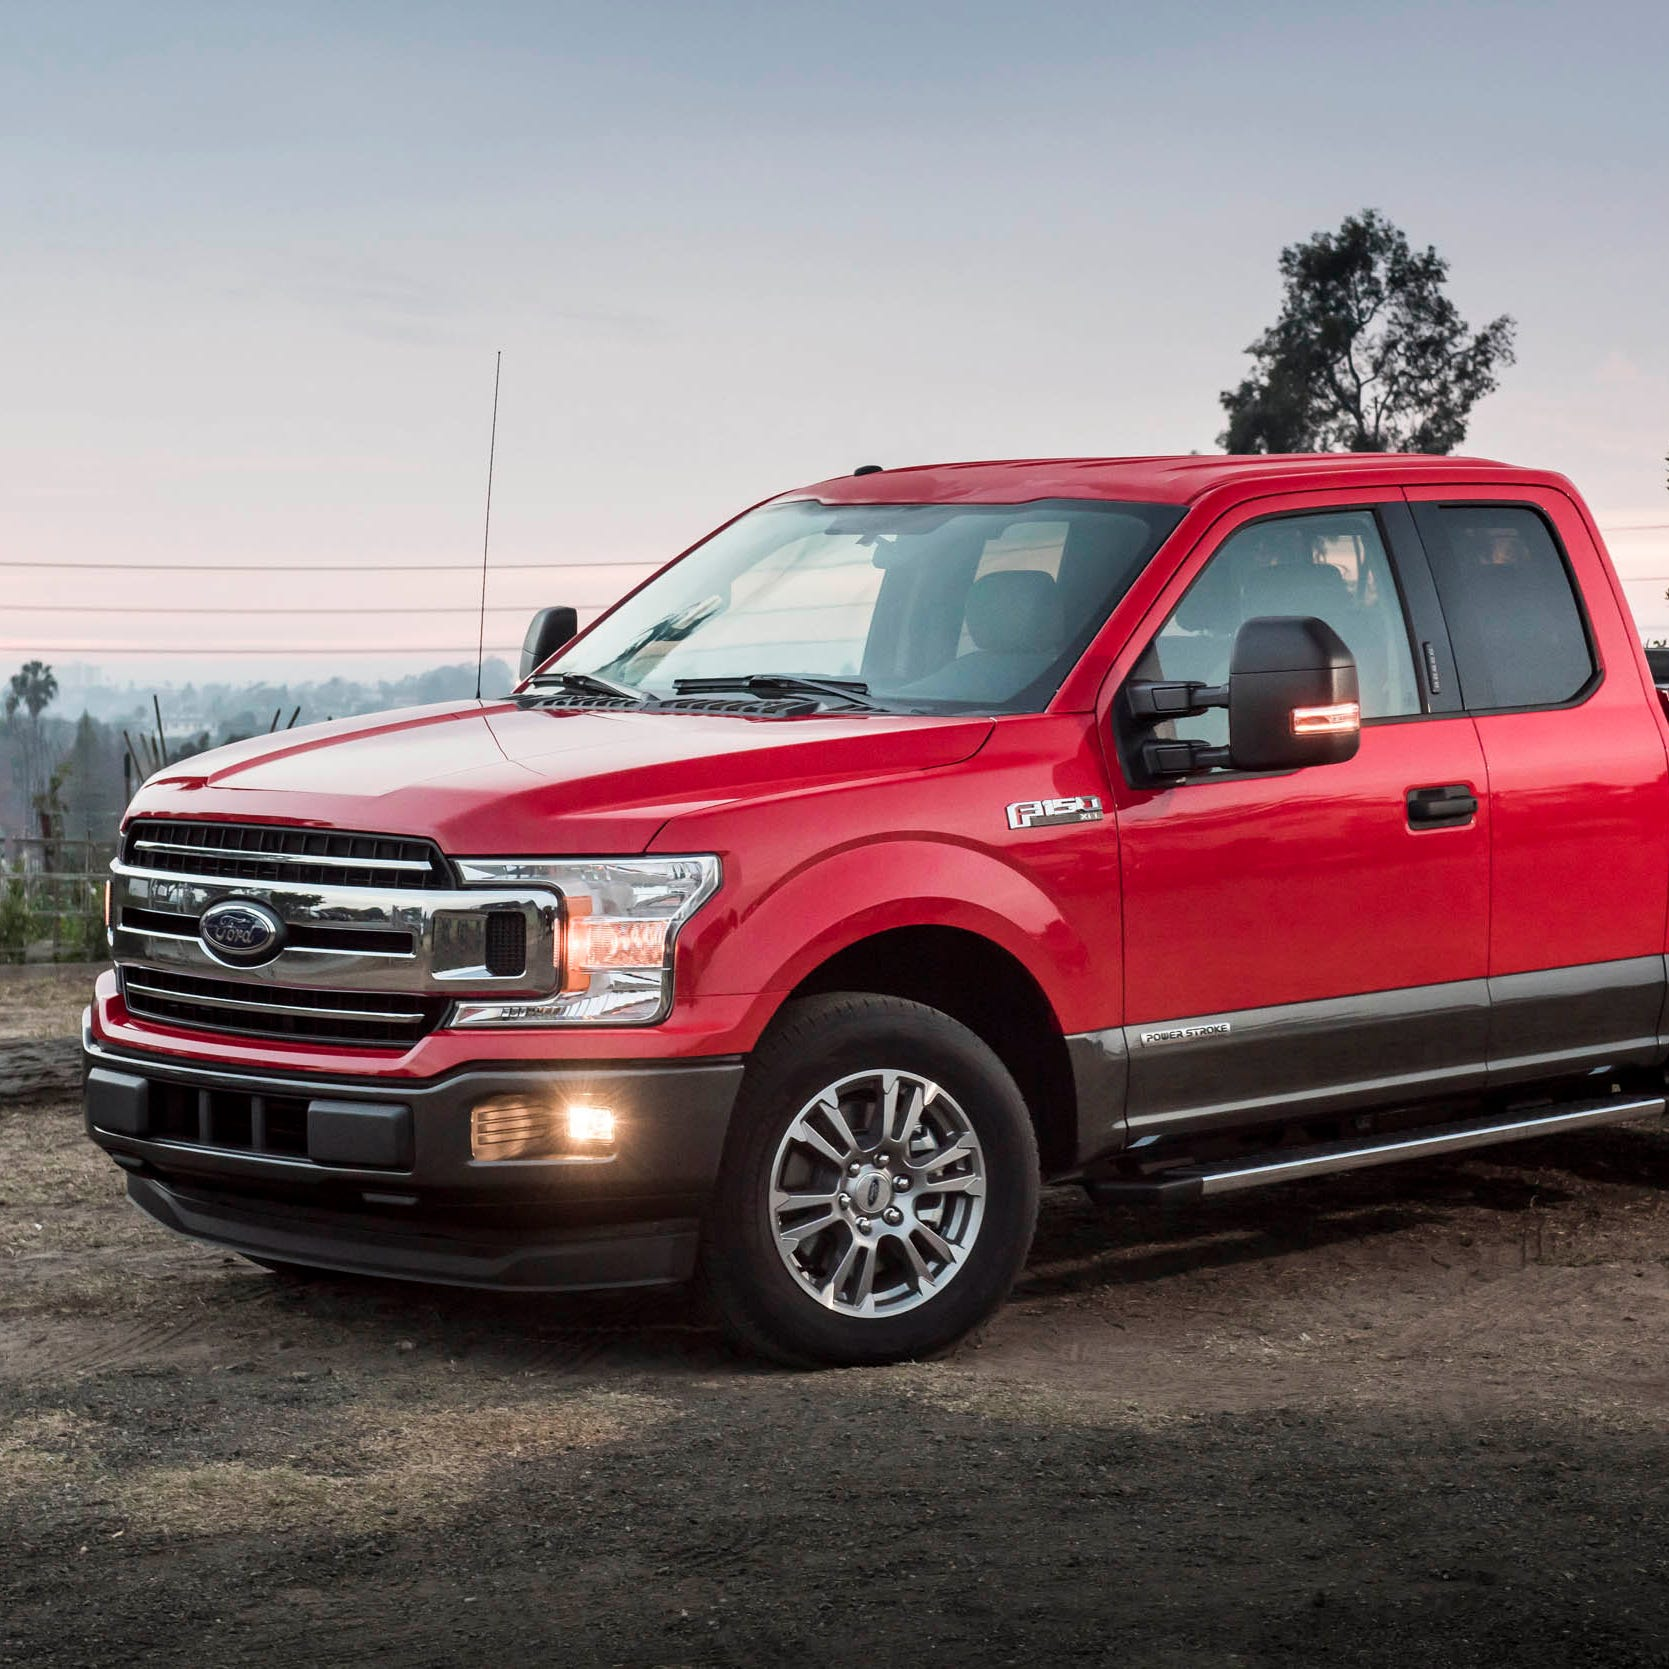 Review: Ford's 2019 F-150 King Ranch is best diesel vehicle on market